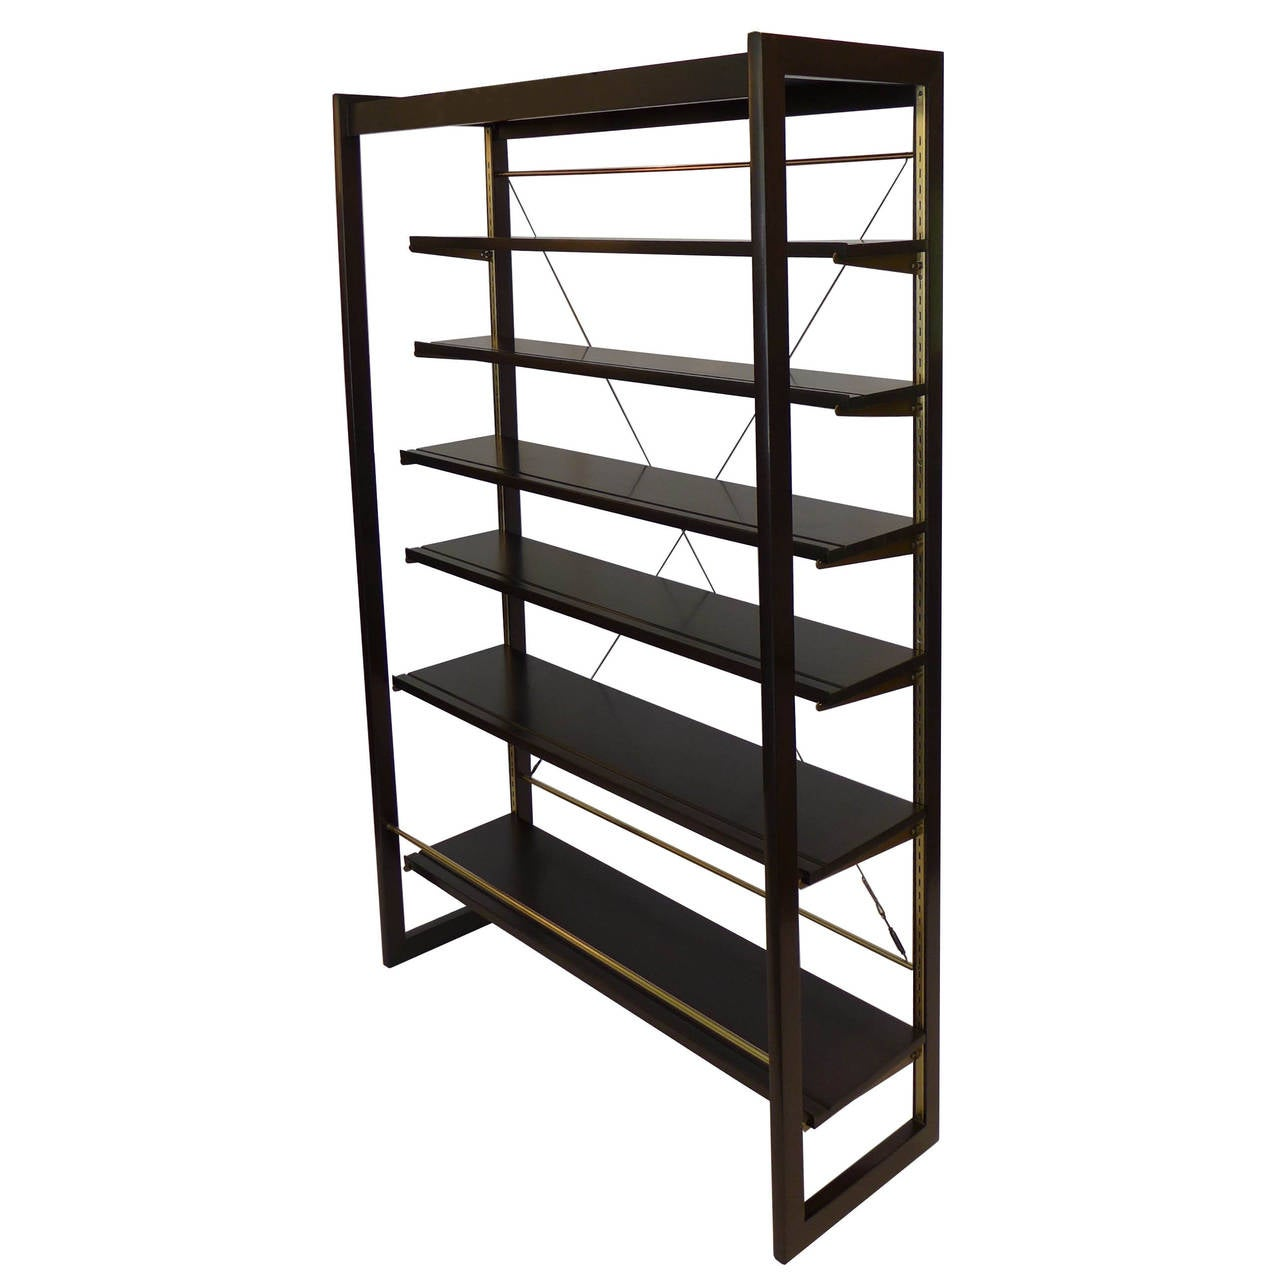 #5C4F40 Rare Edward Wormley Open Frame Lit Shelf Room Divider For  with 1280x1280 px of Recommended Open Shelves Room Dividers 12801280 save image @ avoidforclosure.info